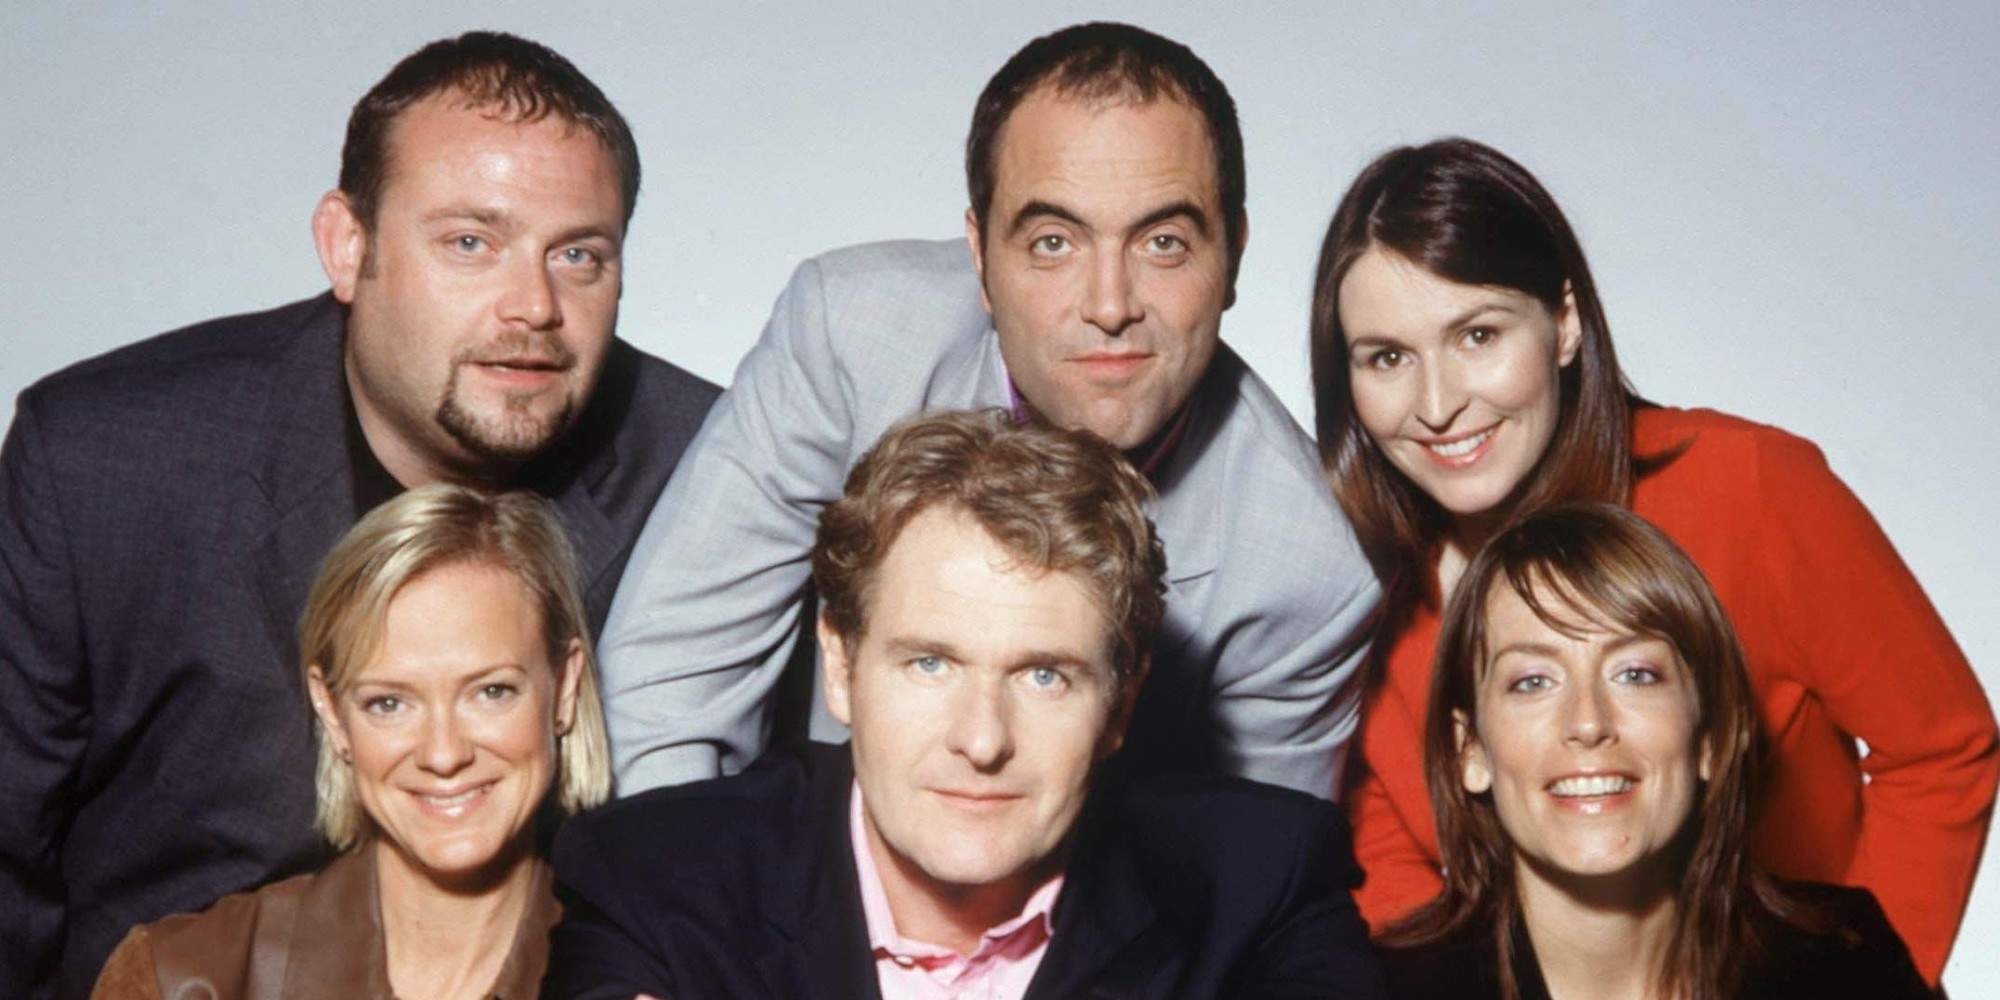 The new, fast-paced Cold Feet gave me surprisingly mushy feelings